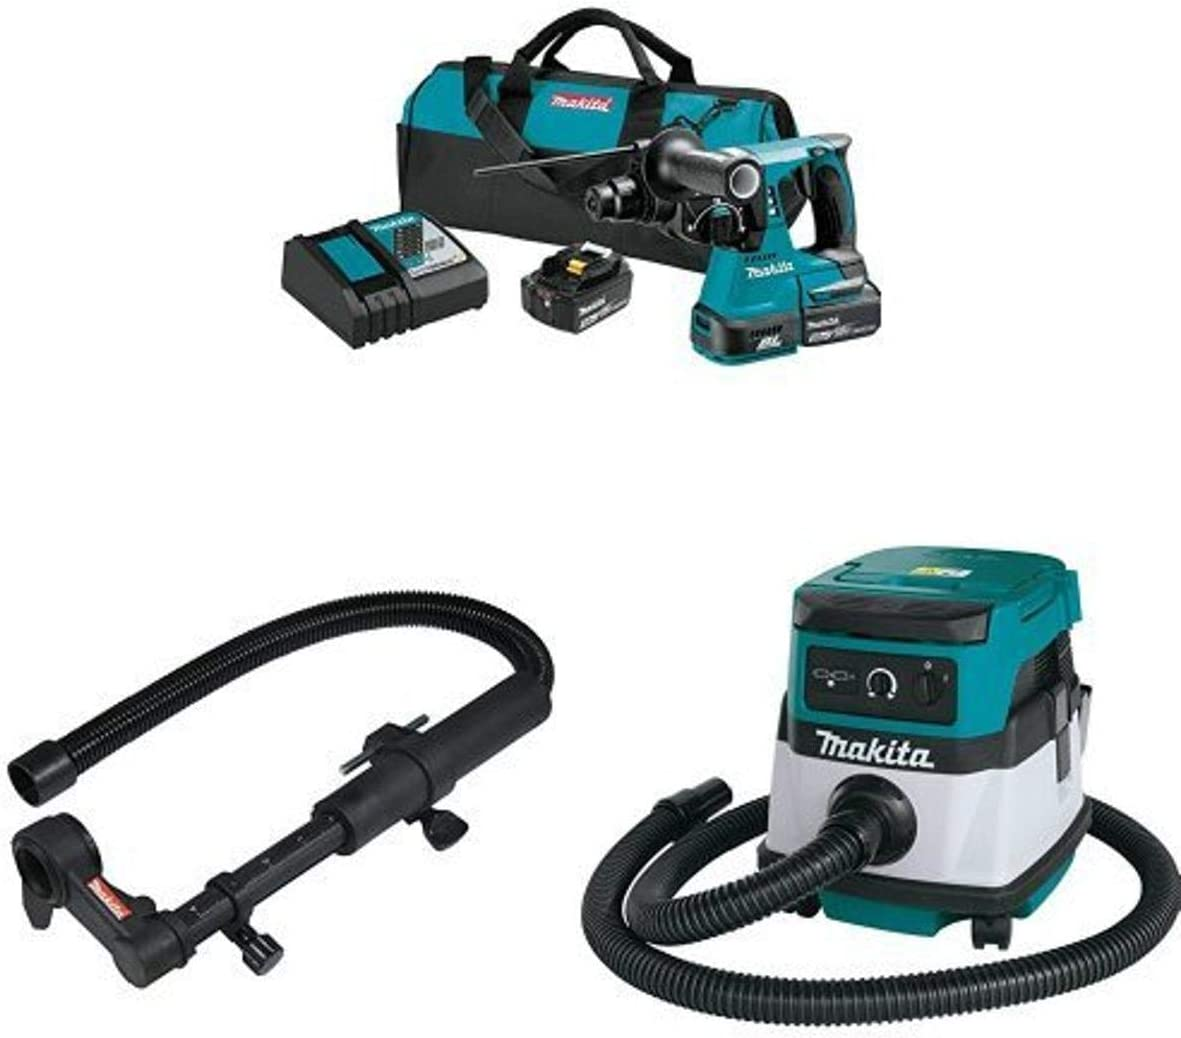 Makita Outlet ☆ Free Shipping XRH01T 18V LXT Brushless 1-Inch Kit Hammer Rotary 193472 Industry No. 1